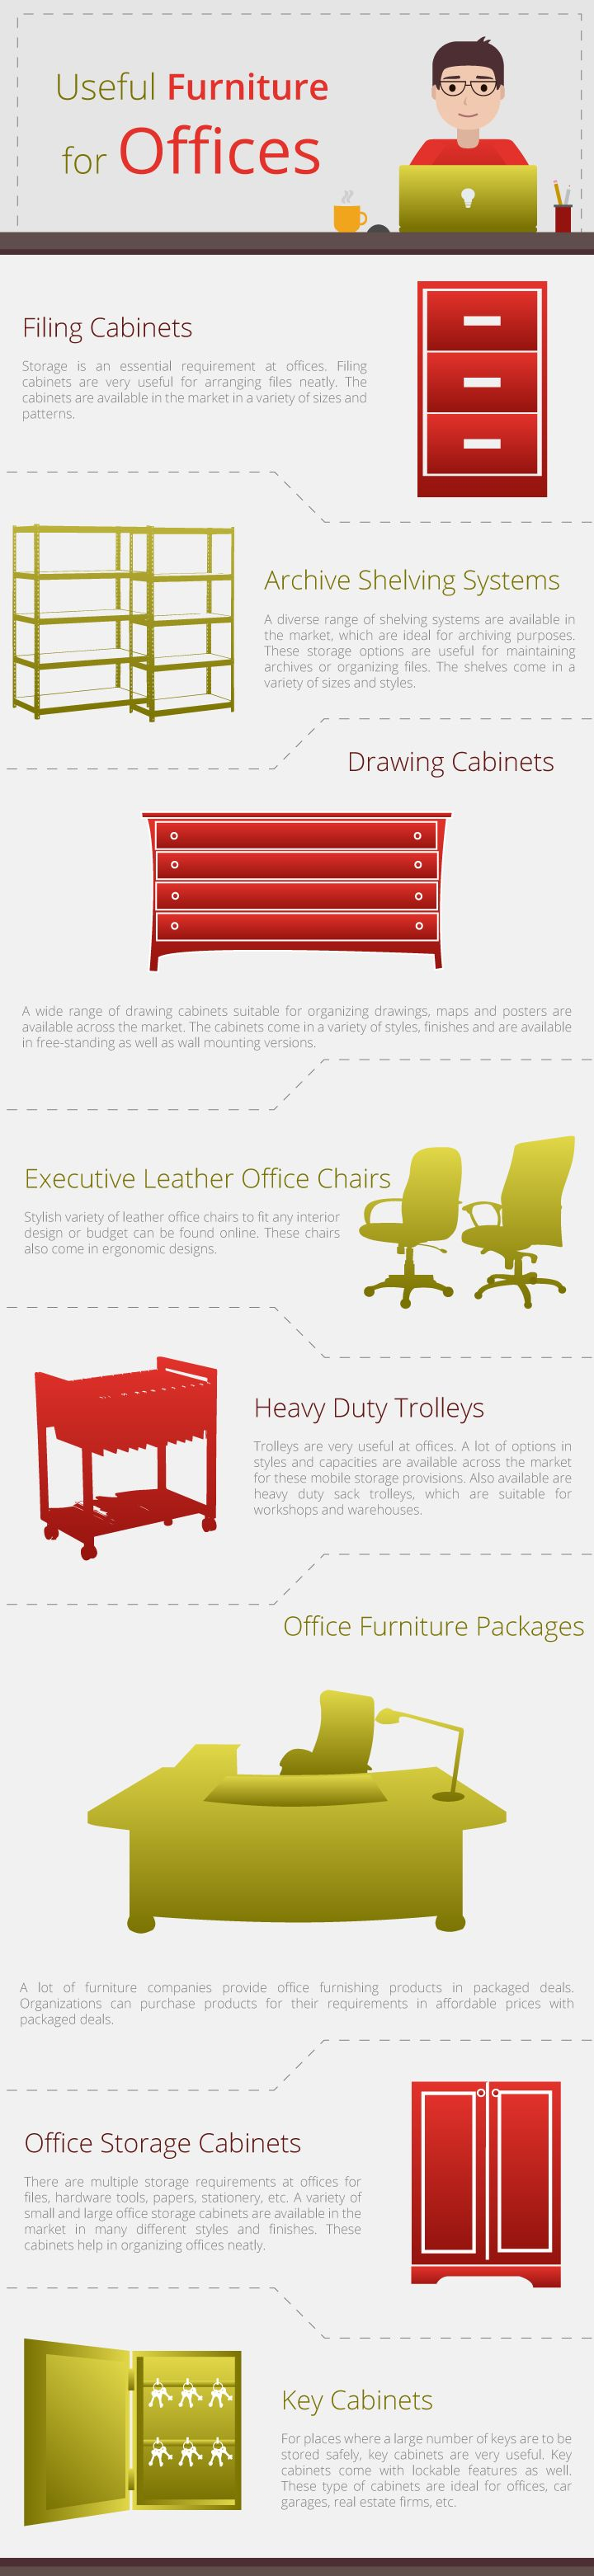 High Quality There Are Several Furniture Companies That Provide Range Of Products To  Furnish Offices Effectively. From Seating To Storage, A Variety Of Furniture  ...